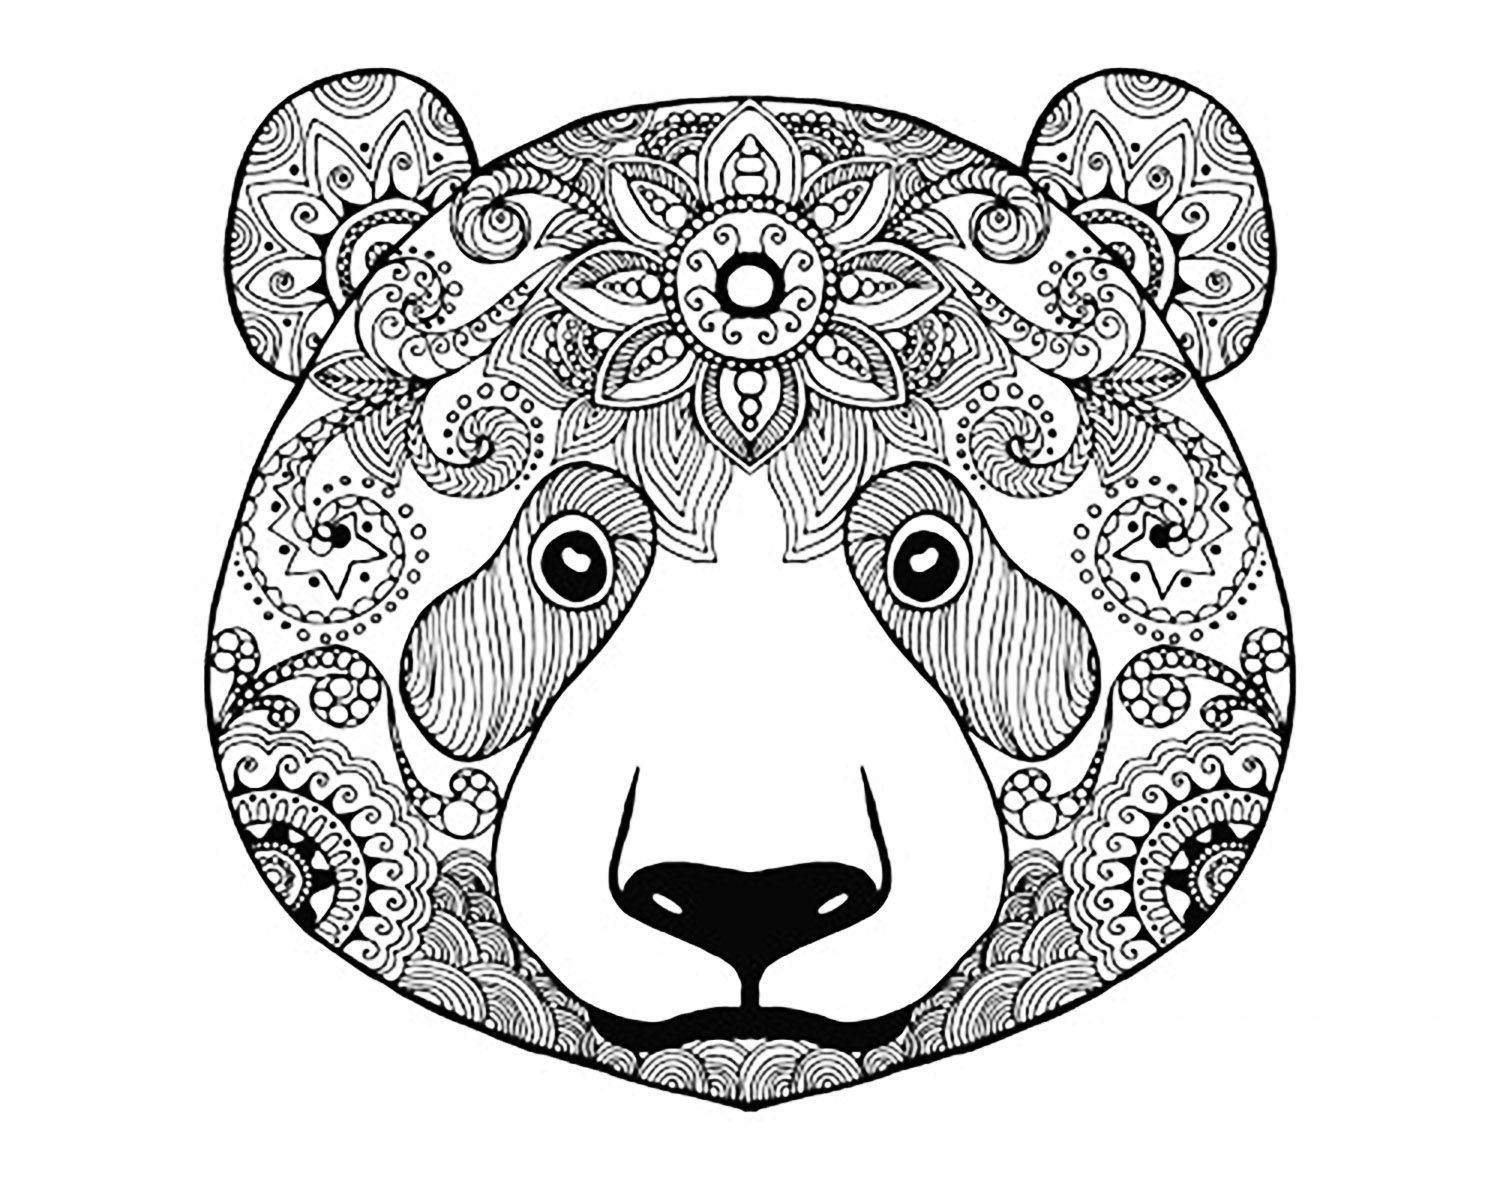 printable pictures to color for adults owl coloring pages for adults free detailed owl coloring to color printable for pictures adults